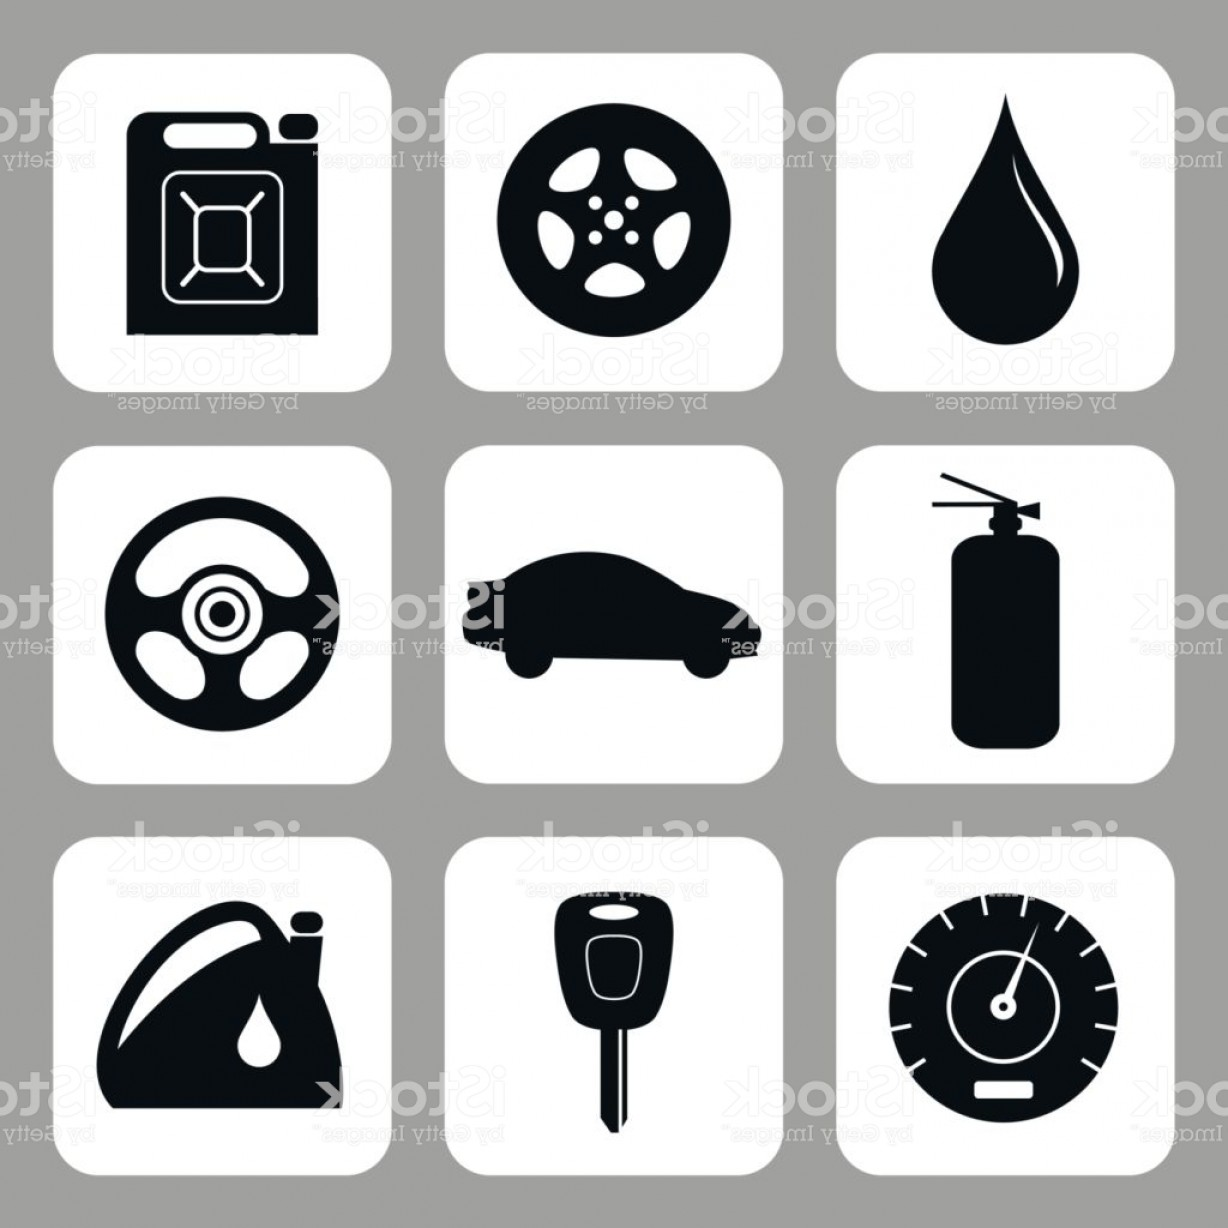 Auto Mobile Vector Art: Car Accessories Vector Set Gm